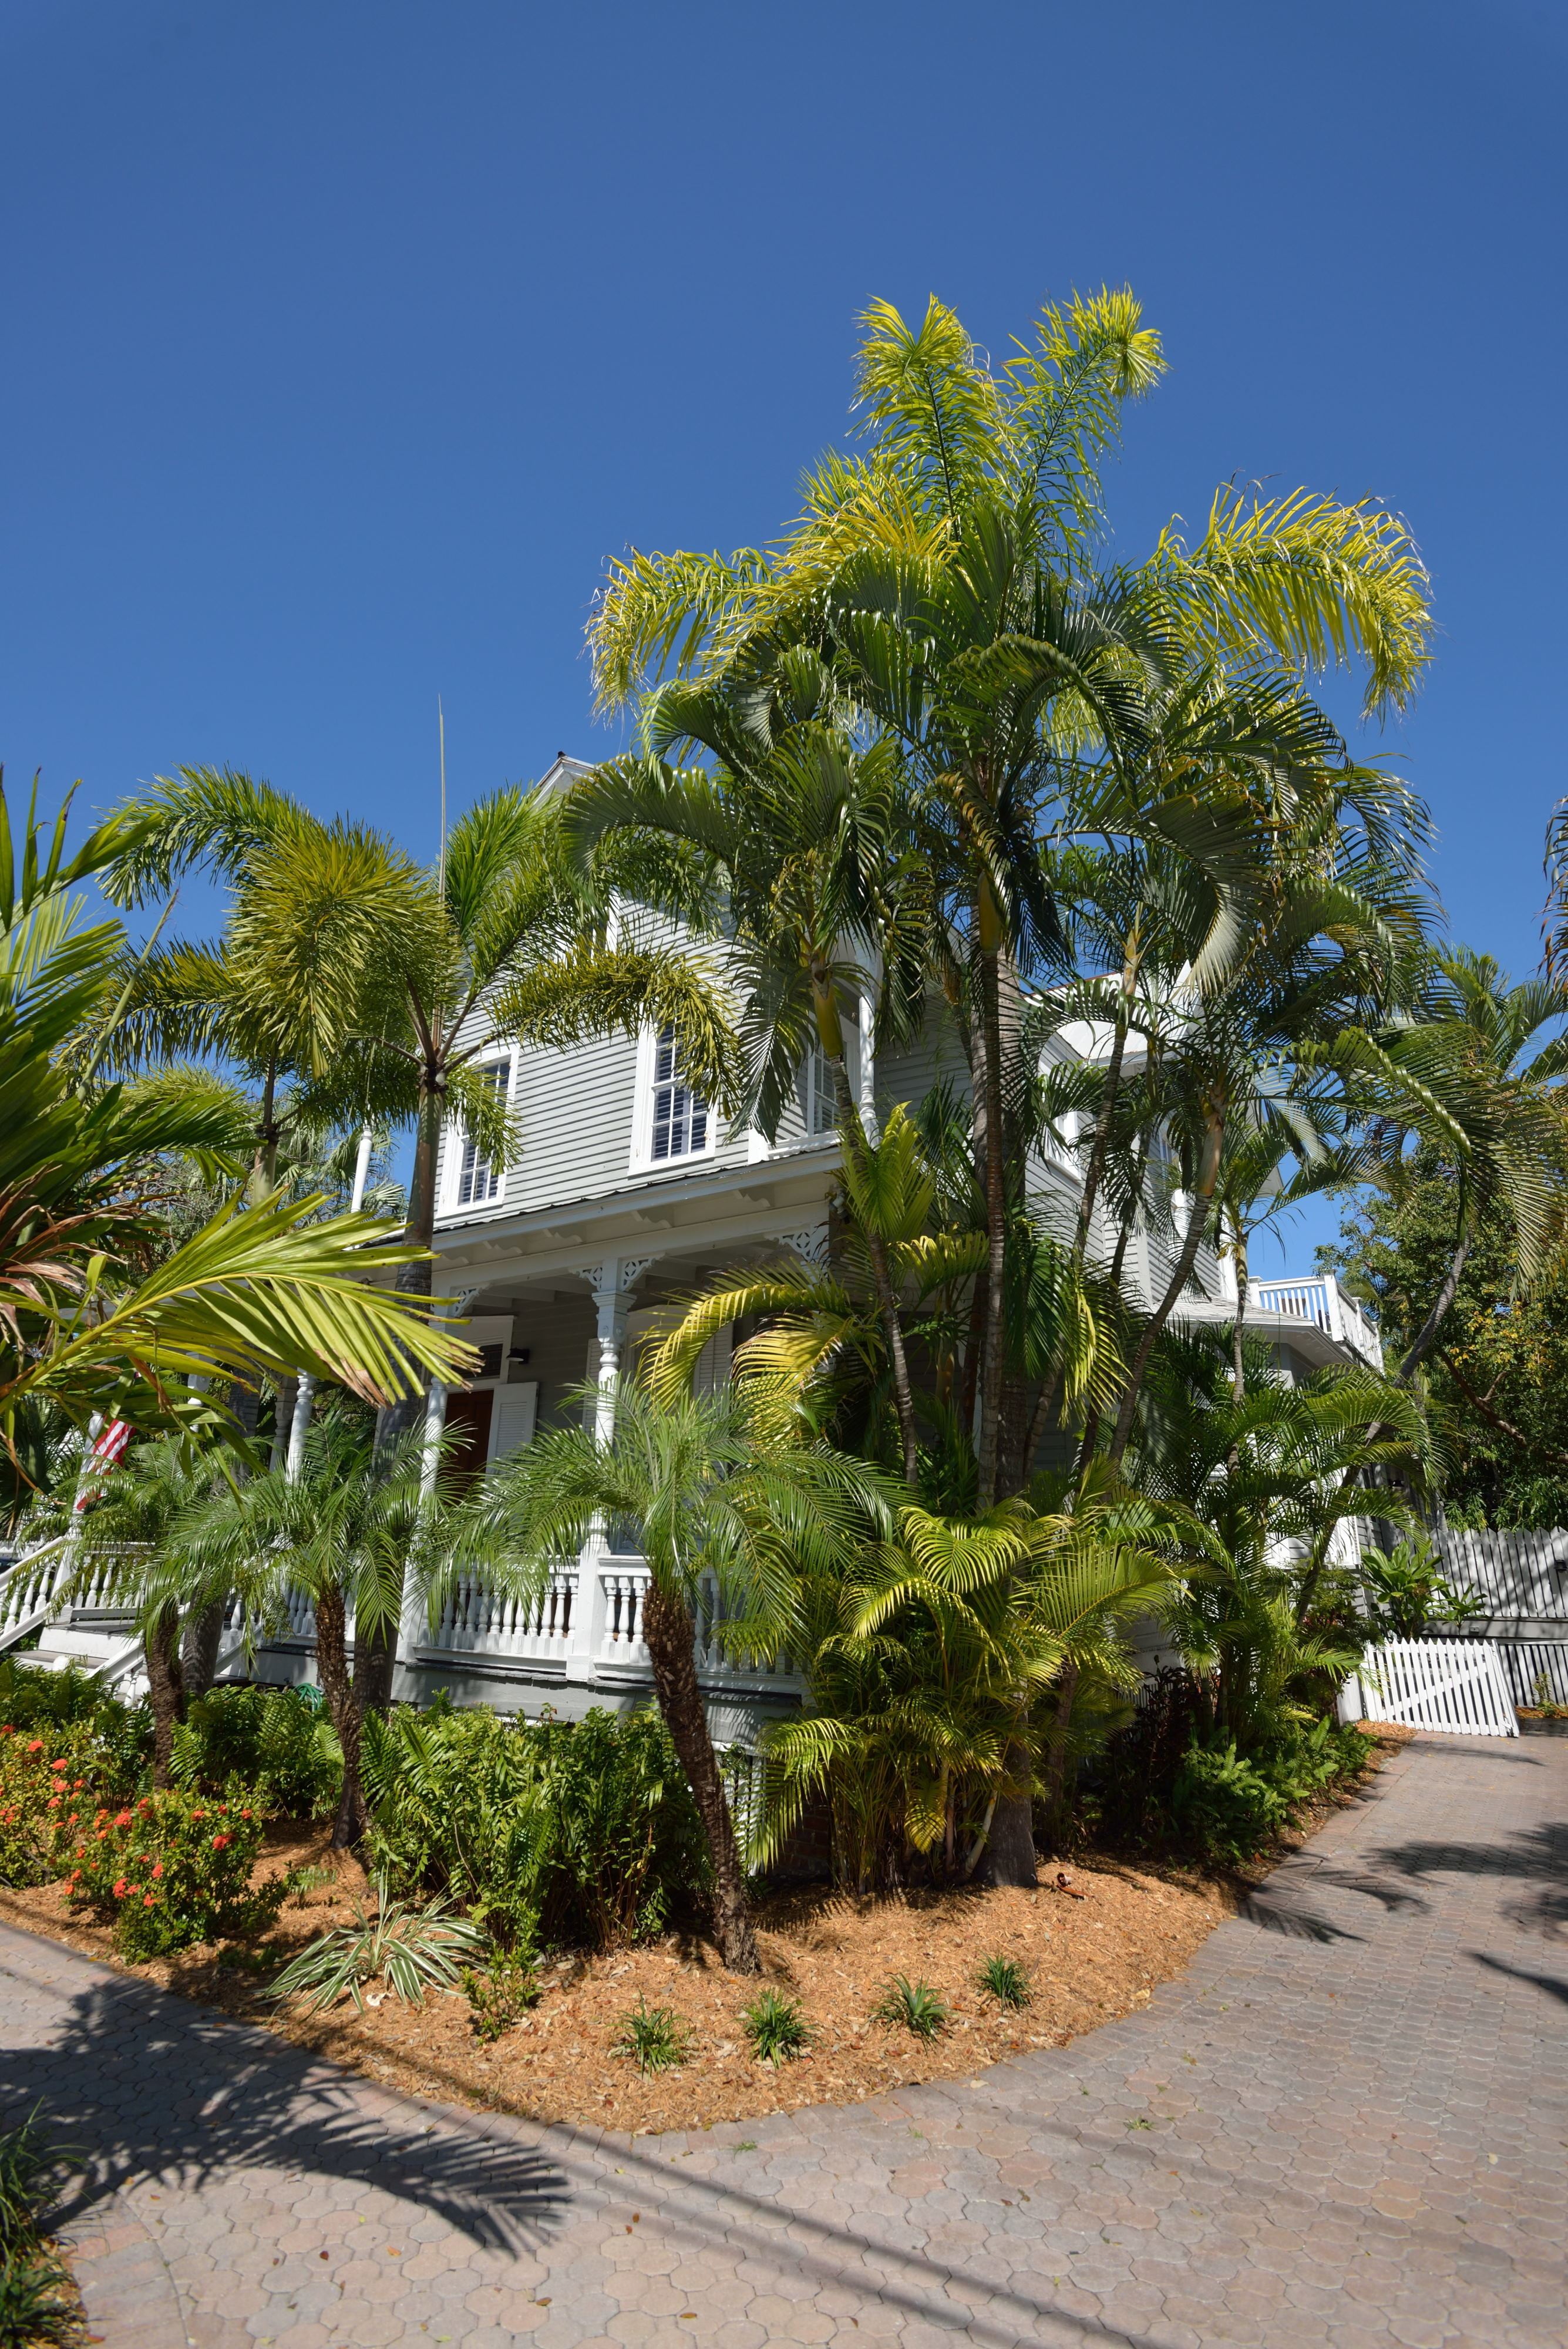 Chelsea house key west pictures Kanye West House Pictures - m